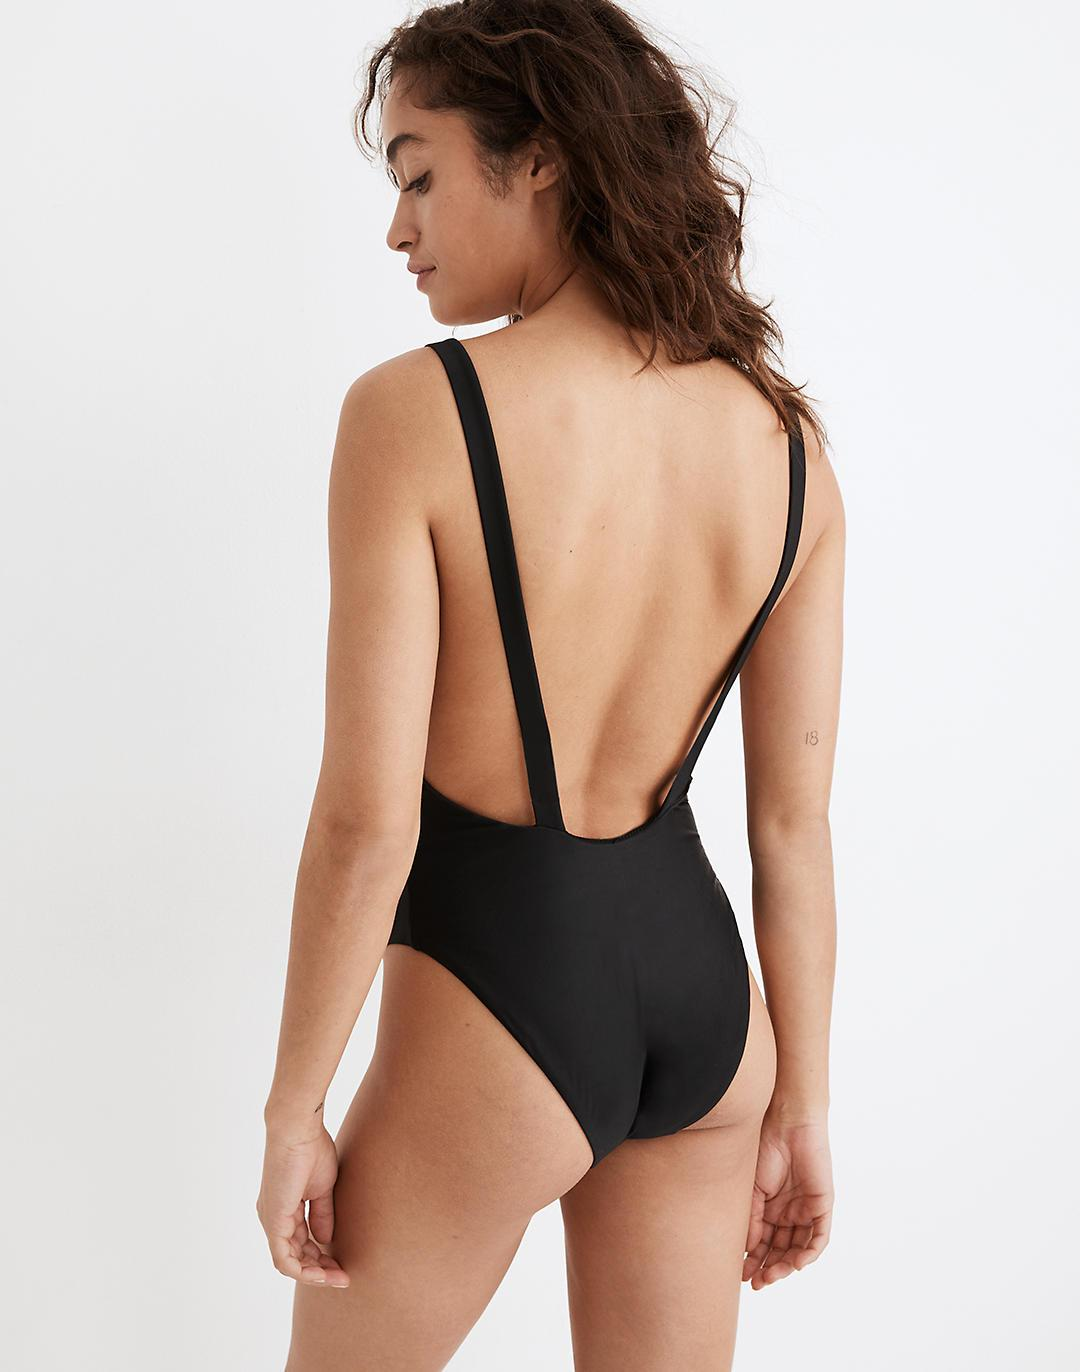 Madewell Second Wave Maillot One-Piece Swimsuit 2